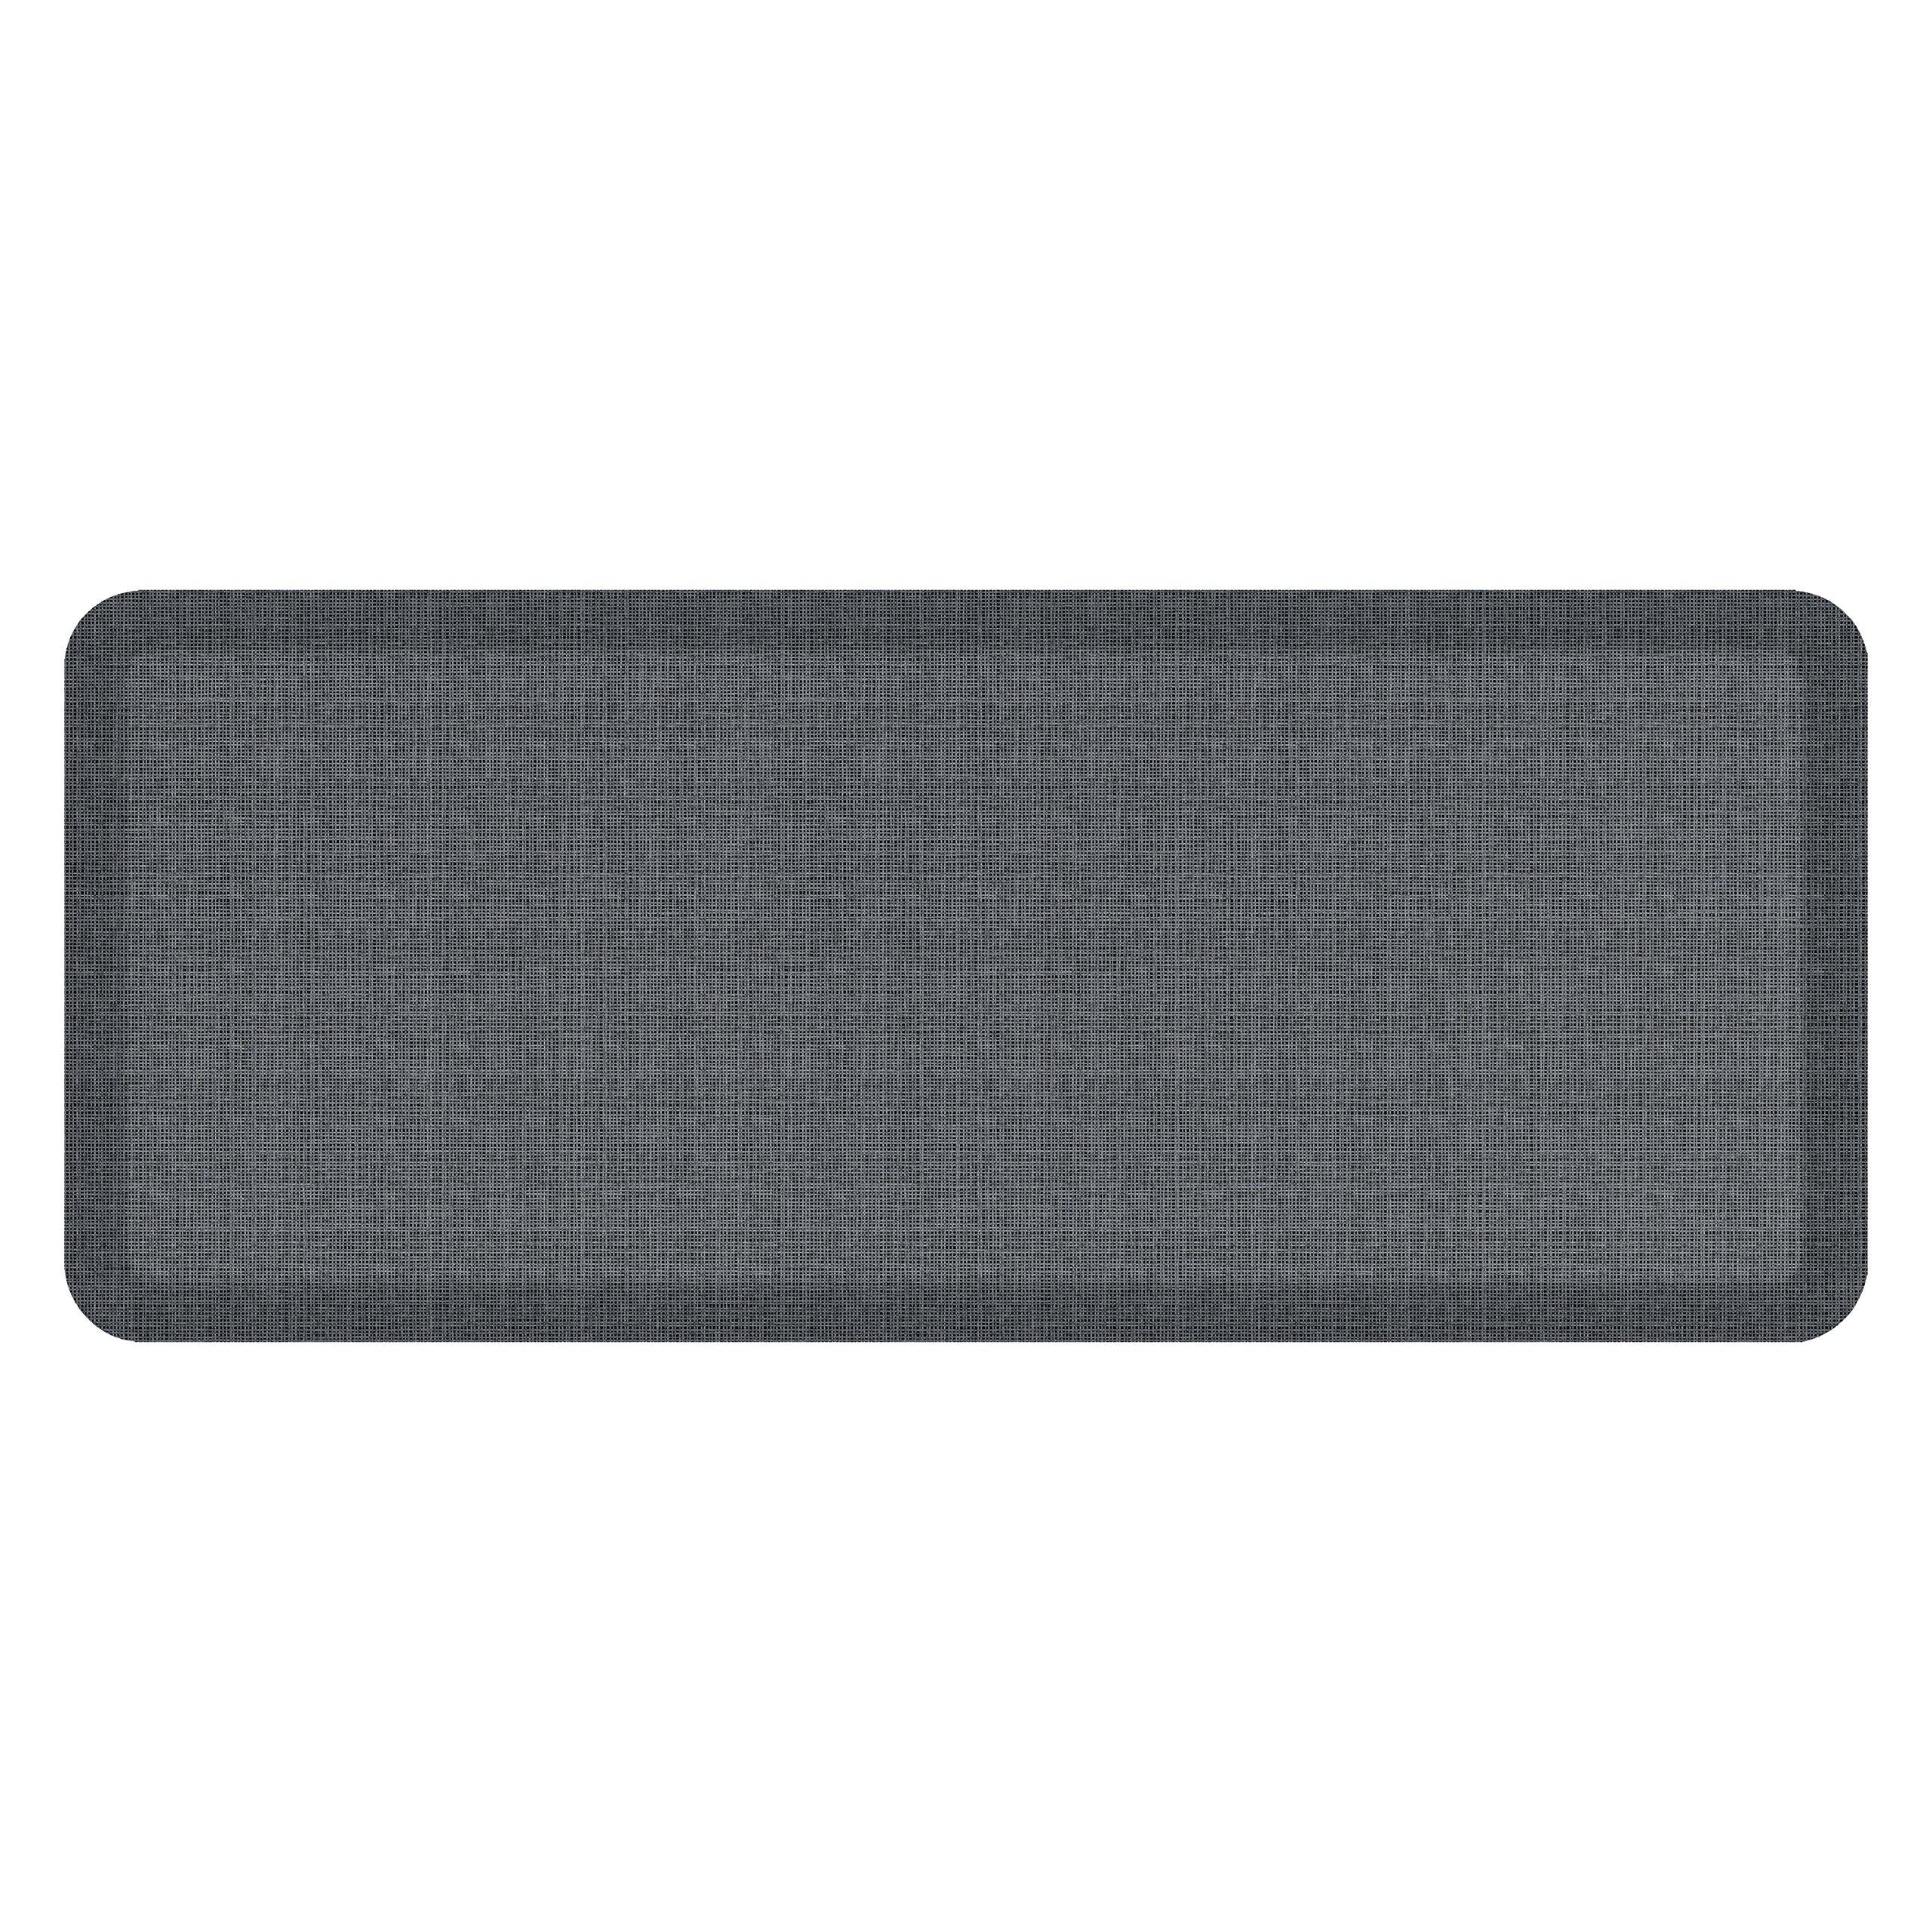 "NewLife by GelPro Anti-Fatigue Designer Comfort Kitchen Floor Mat, 20x48'', Tweed Nickel Grey Stain Resistant Surface with 3/4"" Thick Ergo-foam Core for Health and Wellness"